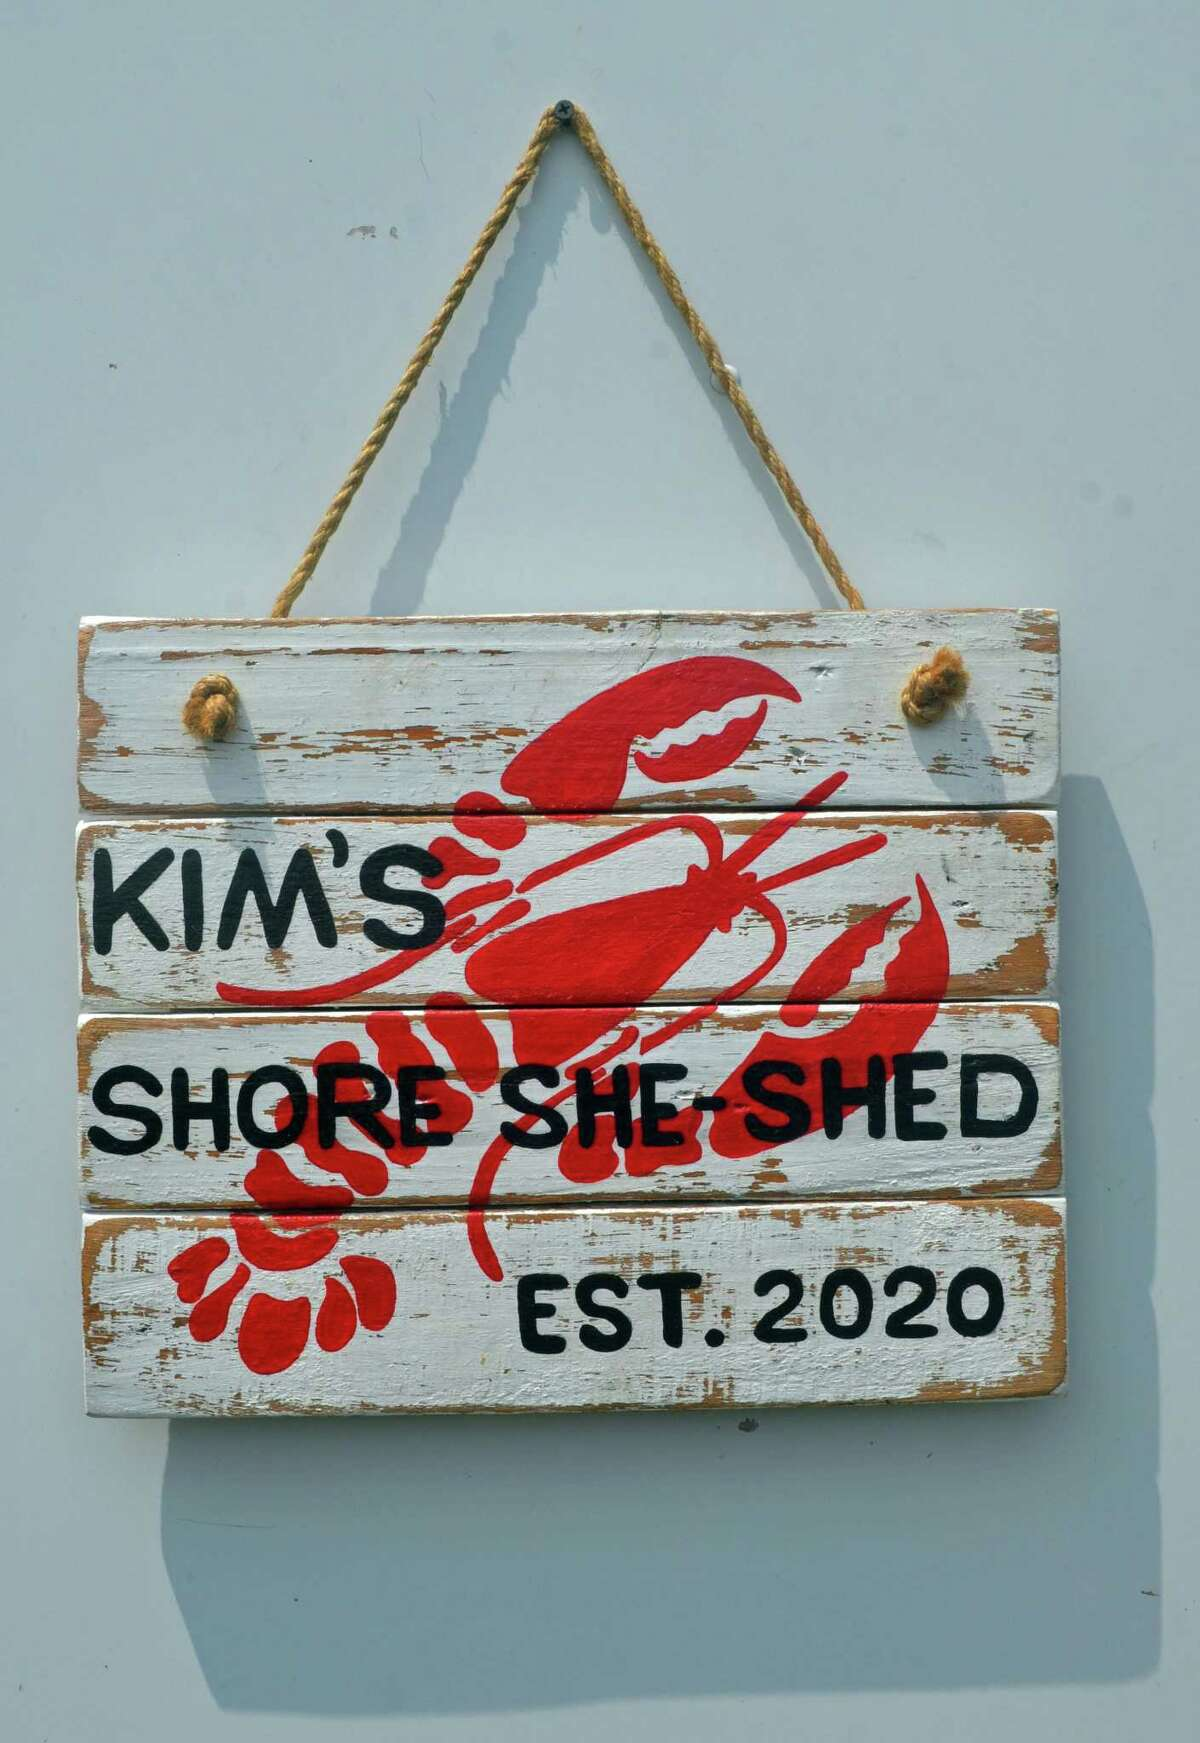 The sign on Kim's Shore-Shed food truck.